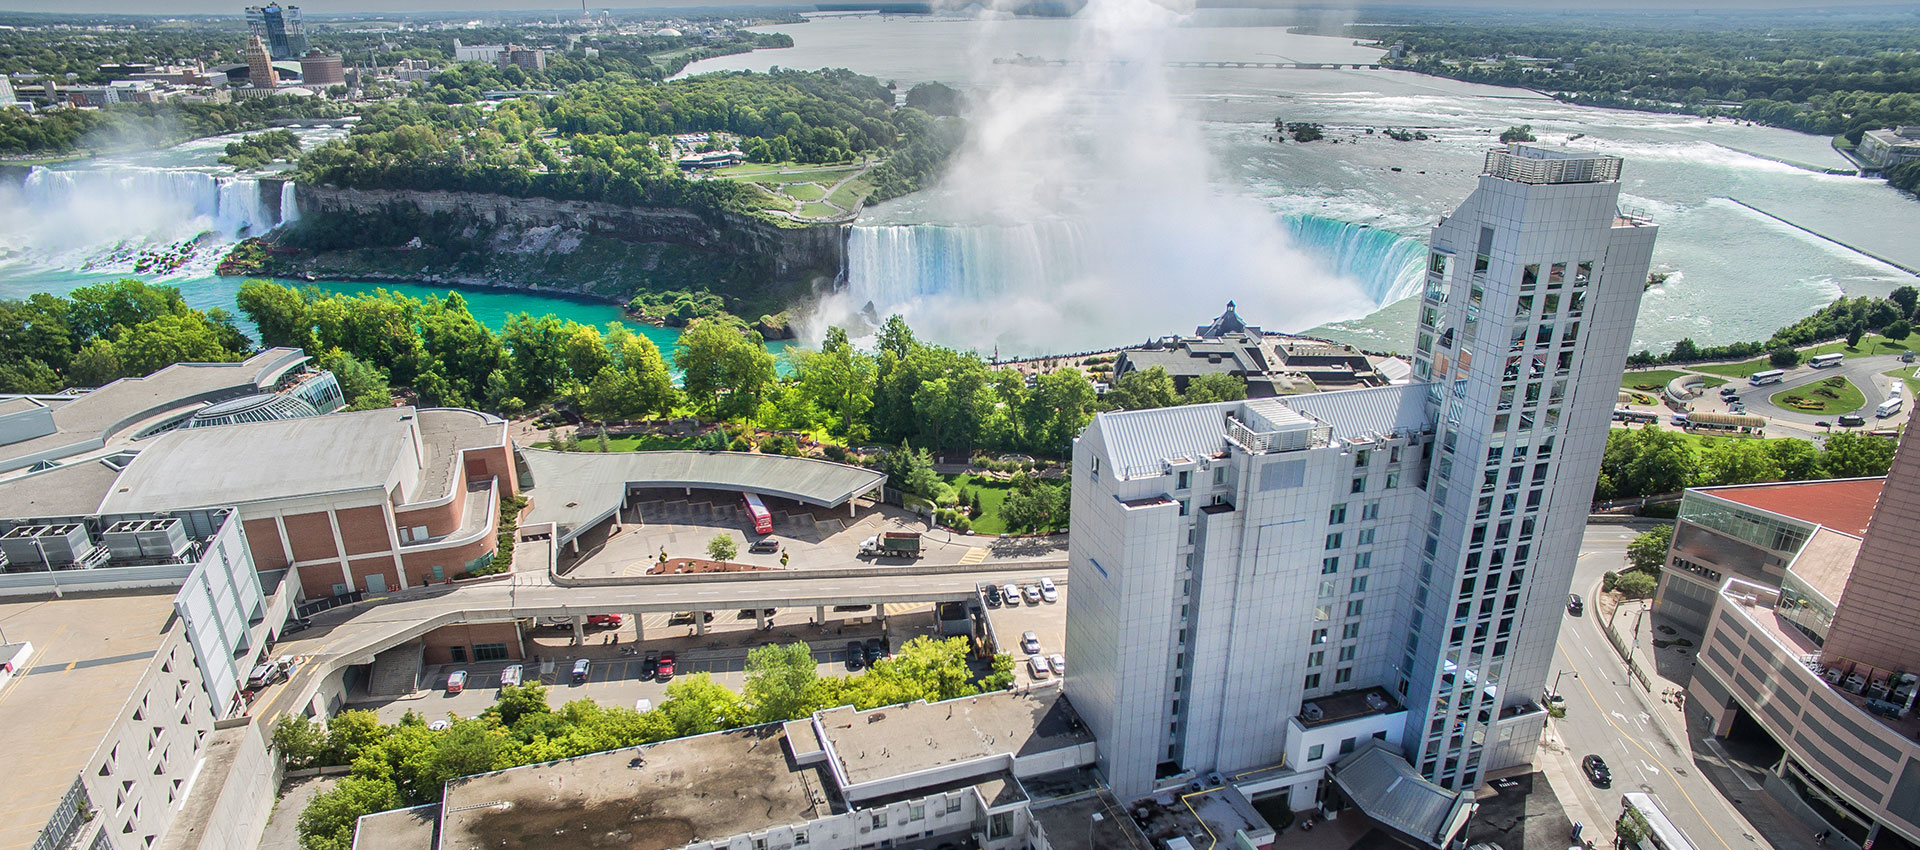 an overlook of the Oakes Hotel and the Niagara Falls next to it from view on the sky on a sunny day